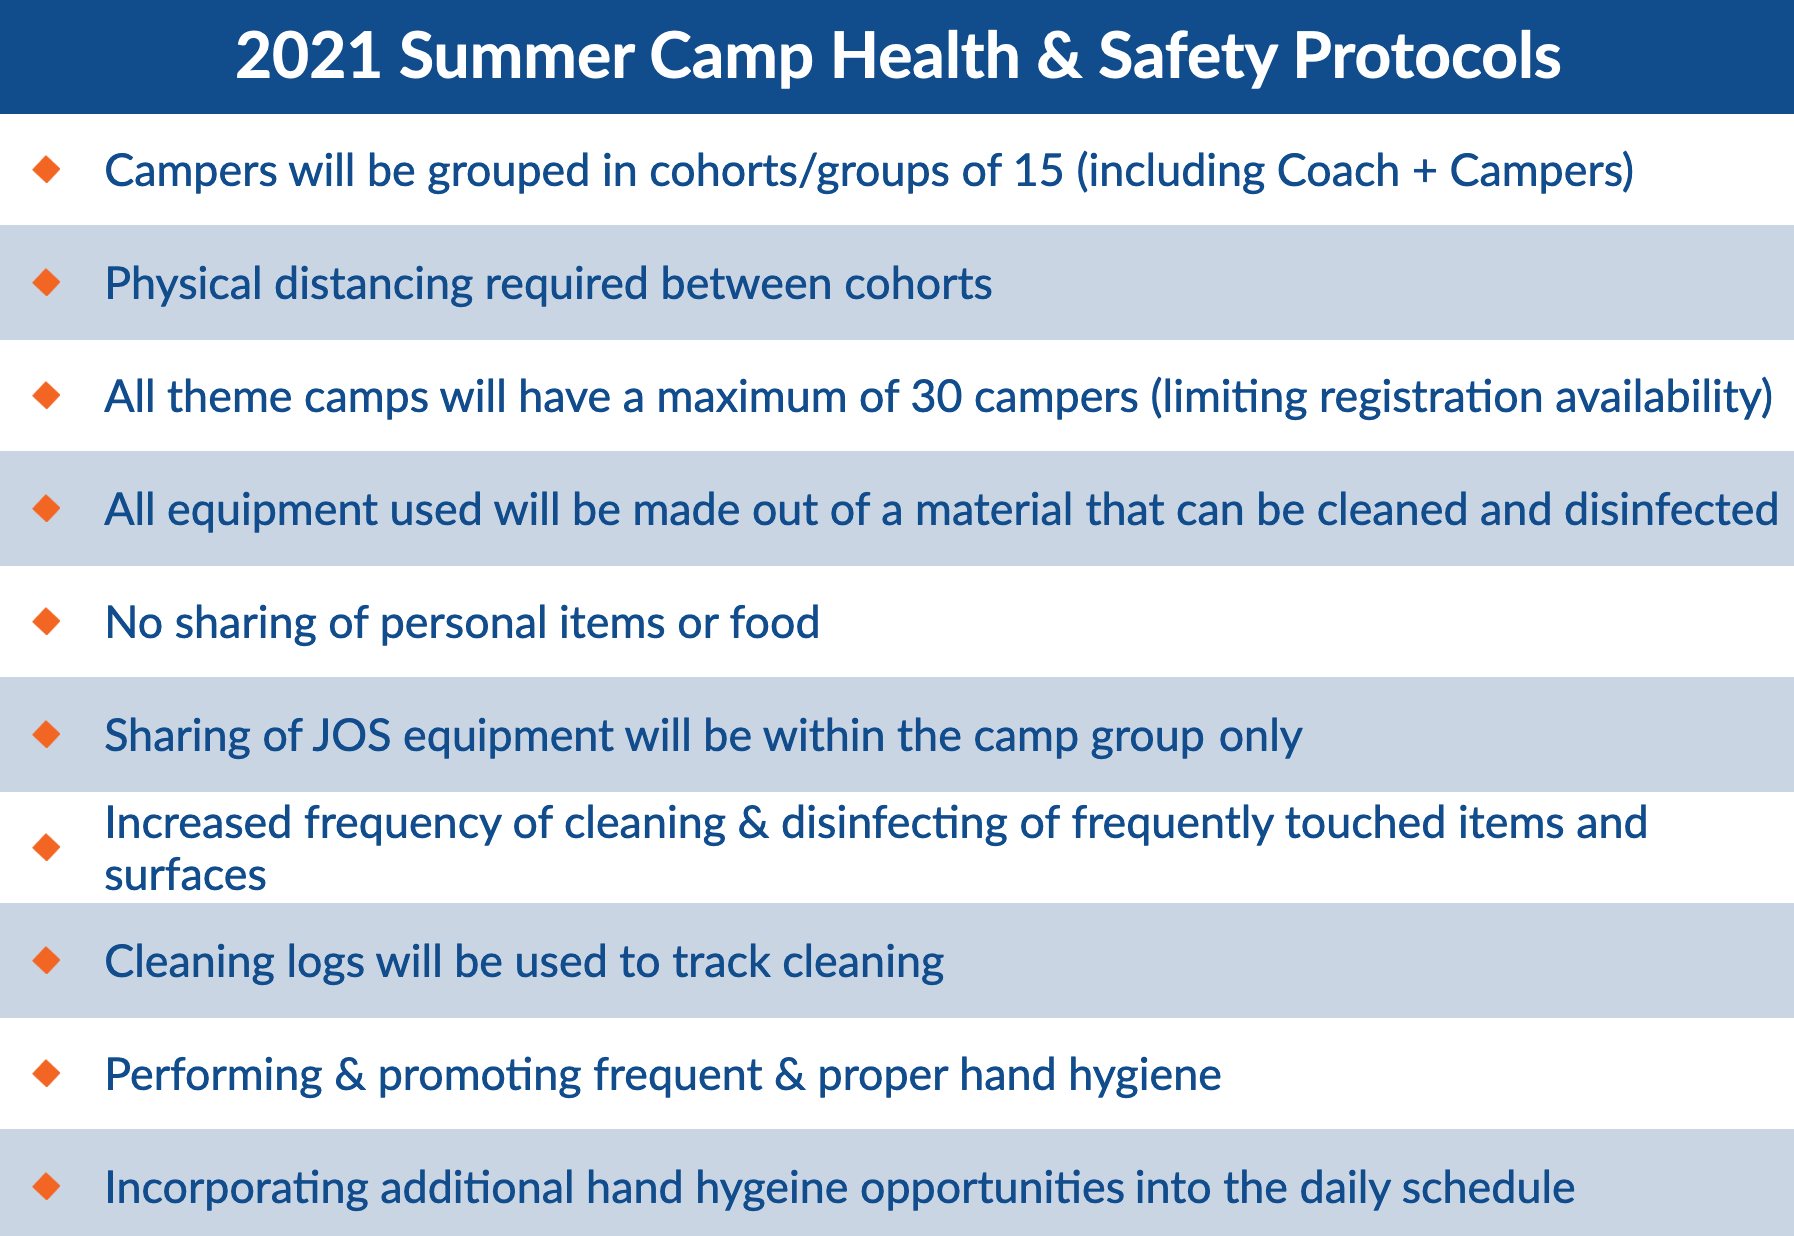 2021 Summer Camp Health & Safety Protocols